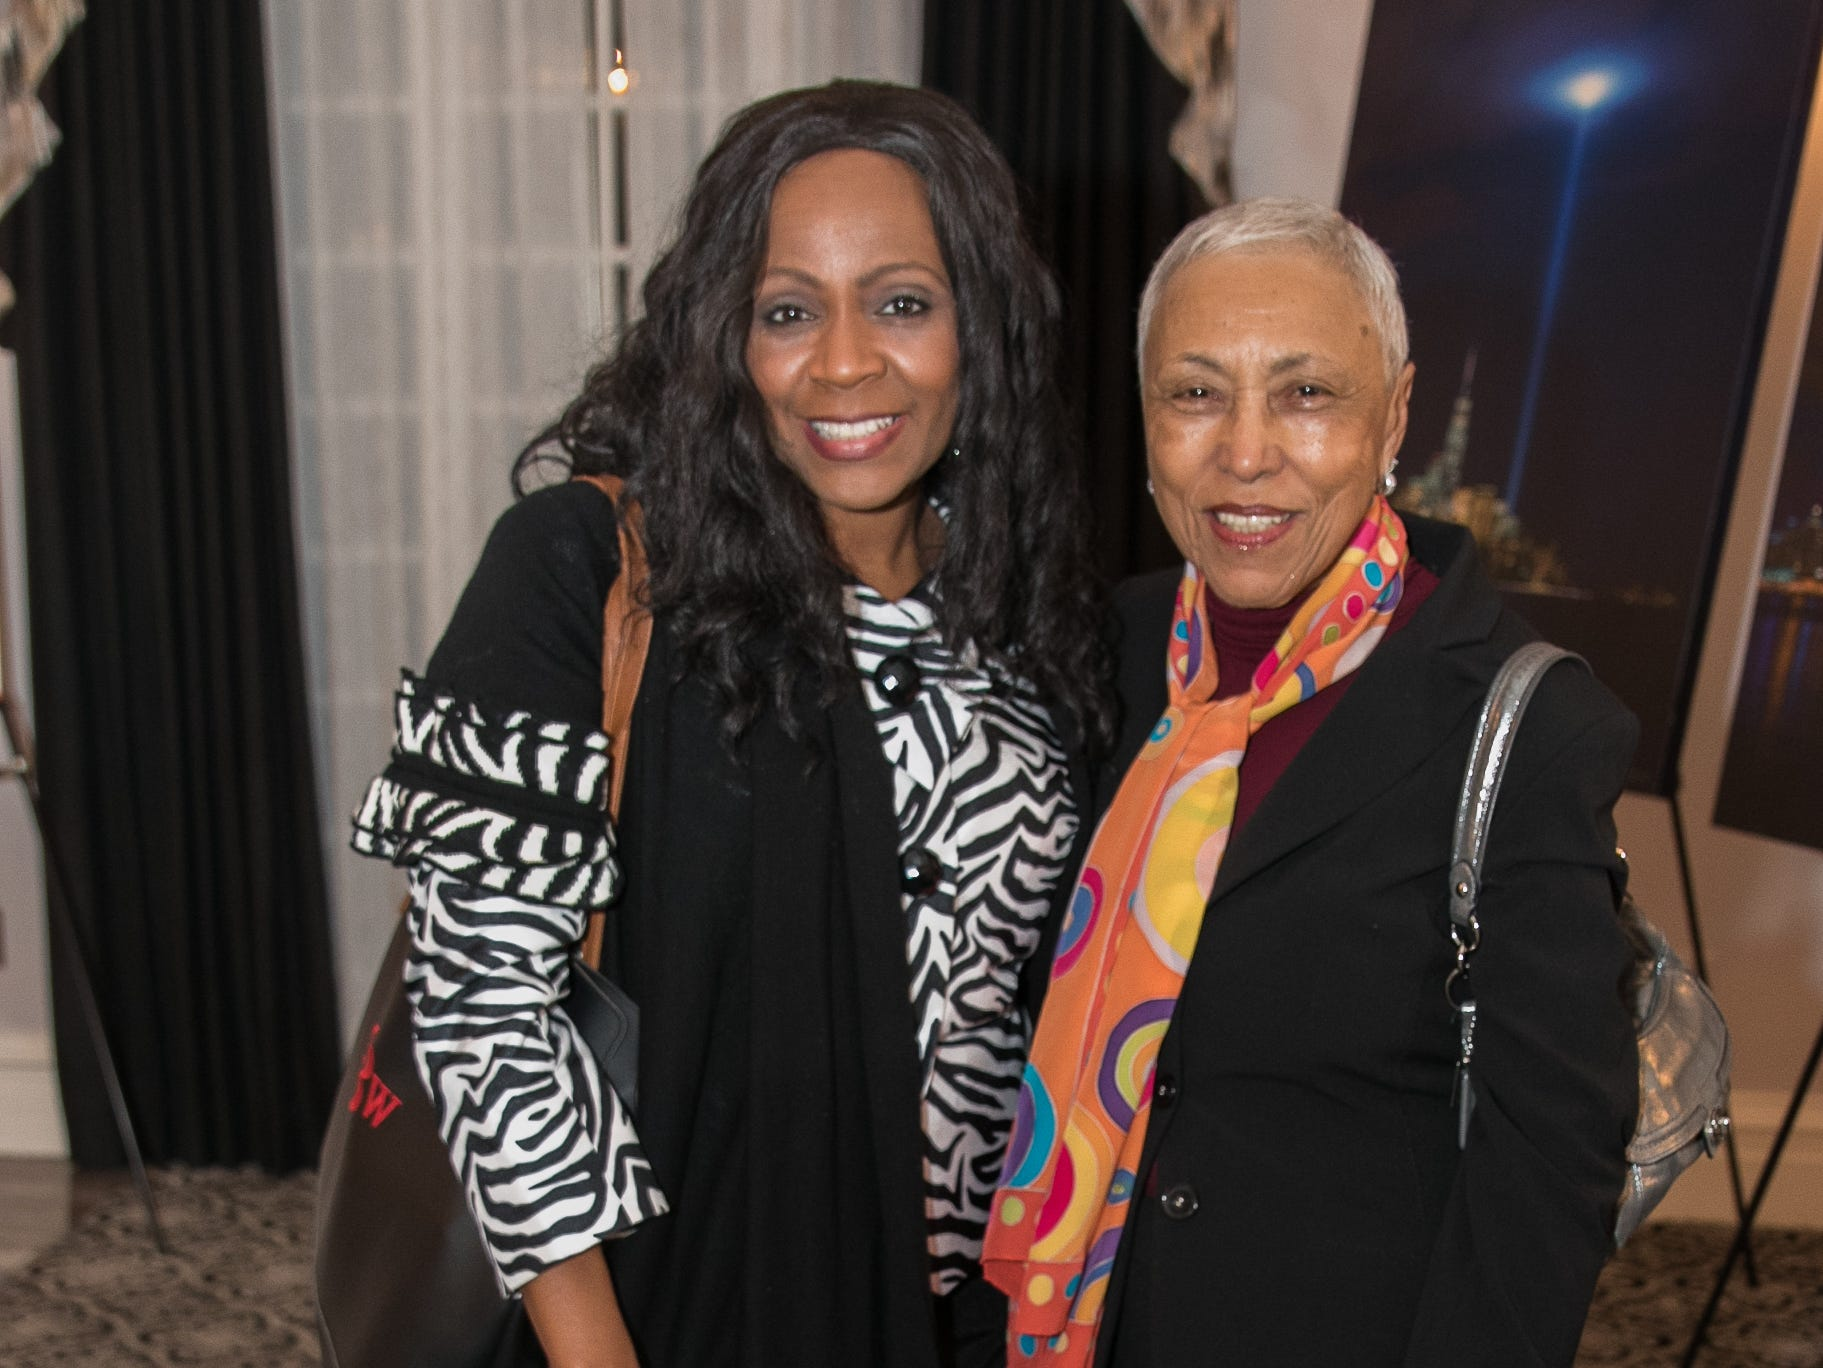 Theresa Brown, Sandra Jackson. The Bergen Volunteer Center celebrated its 10th anniversary of the Bergen LEADS program at The Hearts of Gold Dinner and Auction at the Stony Hill Inn in Hackensack. 11/08/2018